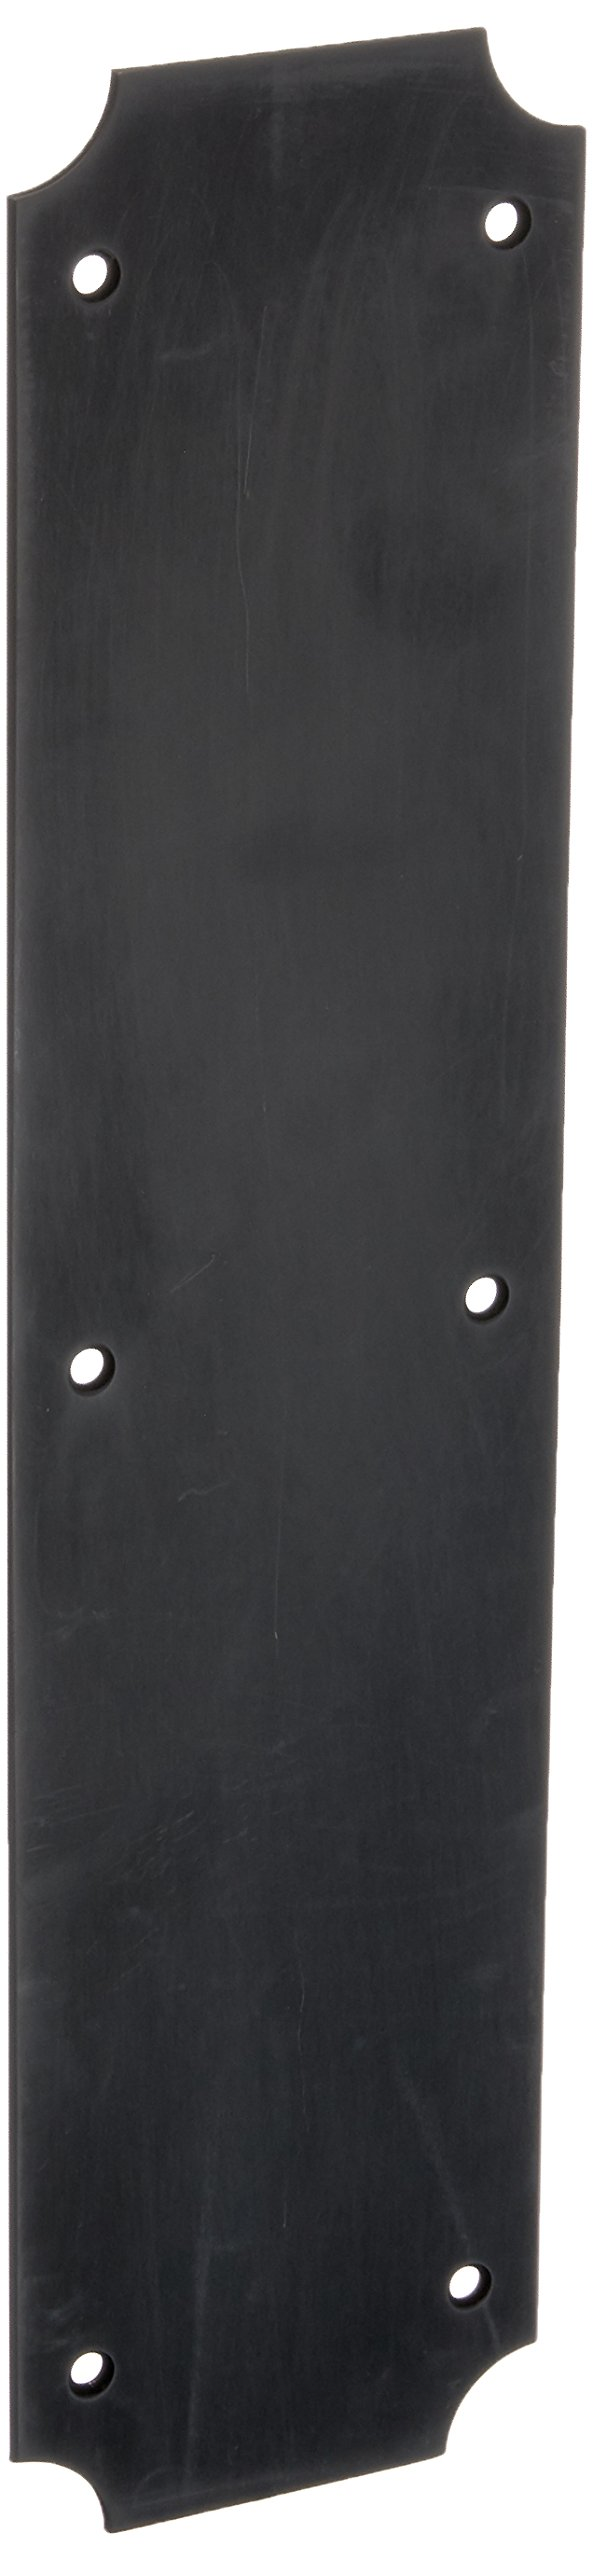 Baldwin 2275 3-1/2 Inch x 15 Inch Solid Brass Scalloped Push Plate, Oil Rubbed Bronze